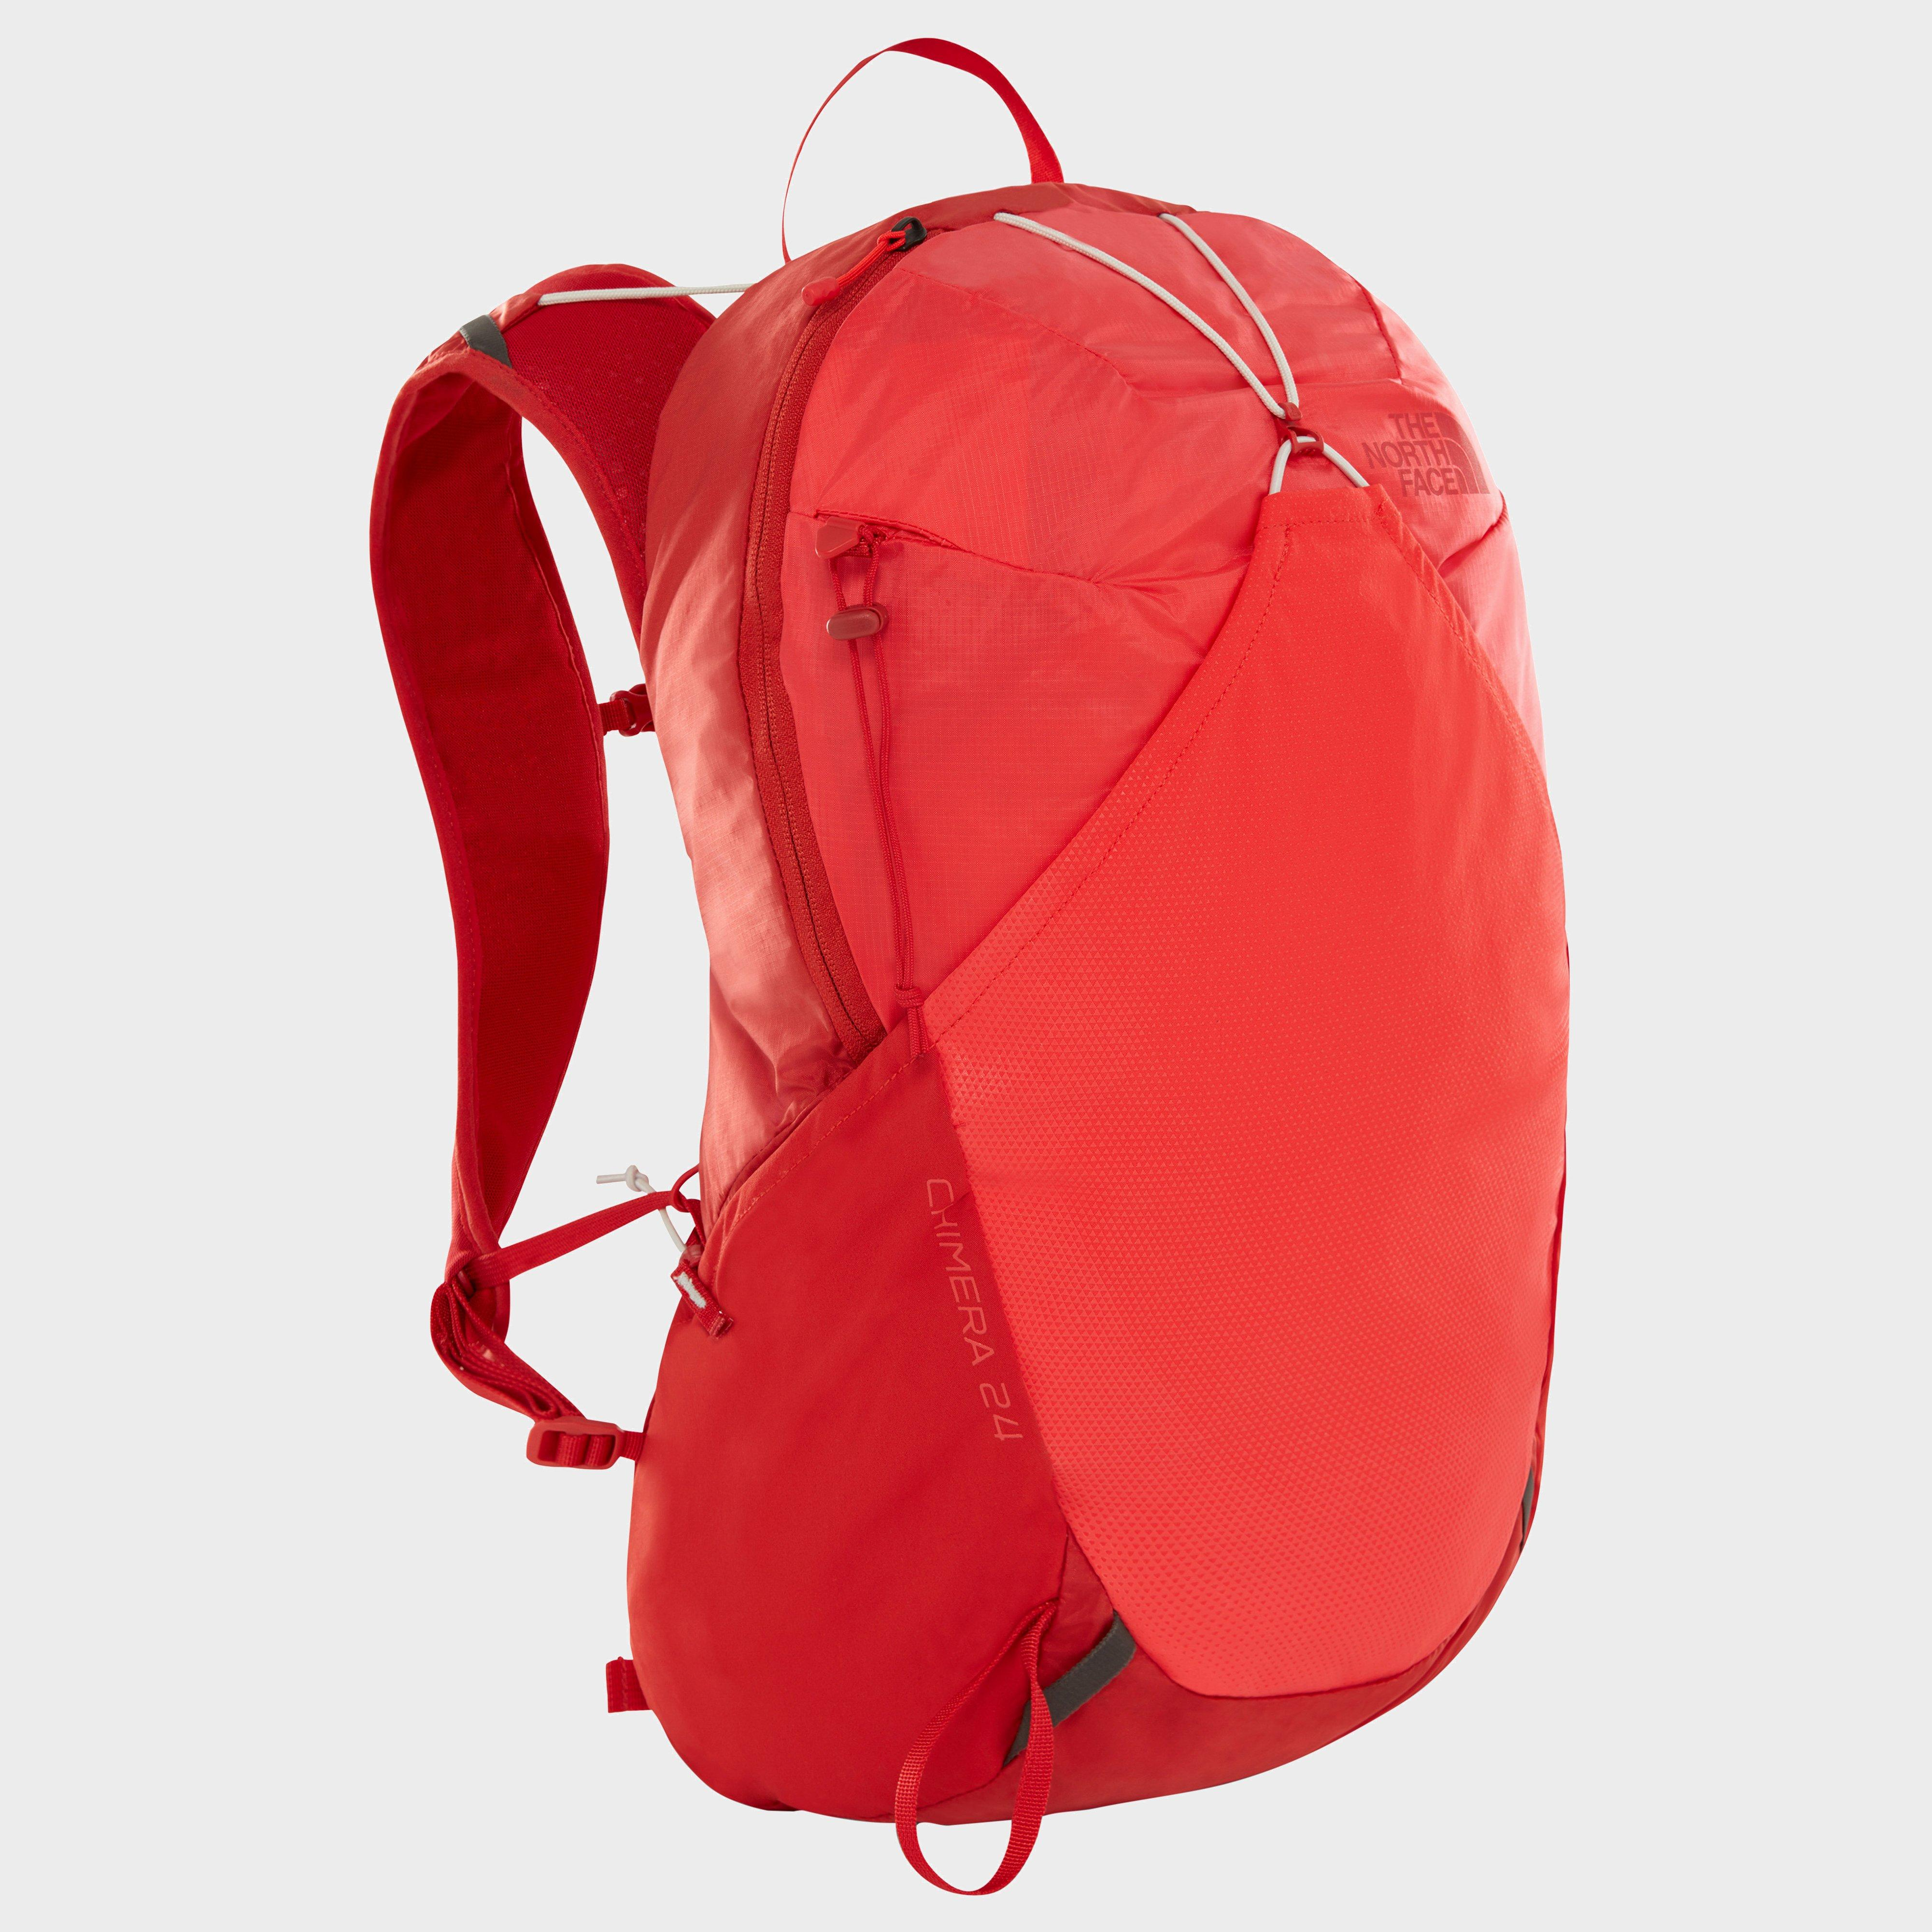 bd31d4bec8 New The North Face Women's Chimera 24L Backpack 192360812789 | eBay